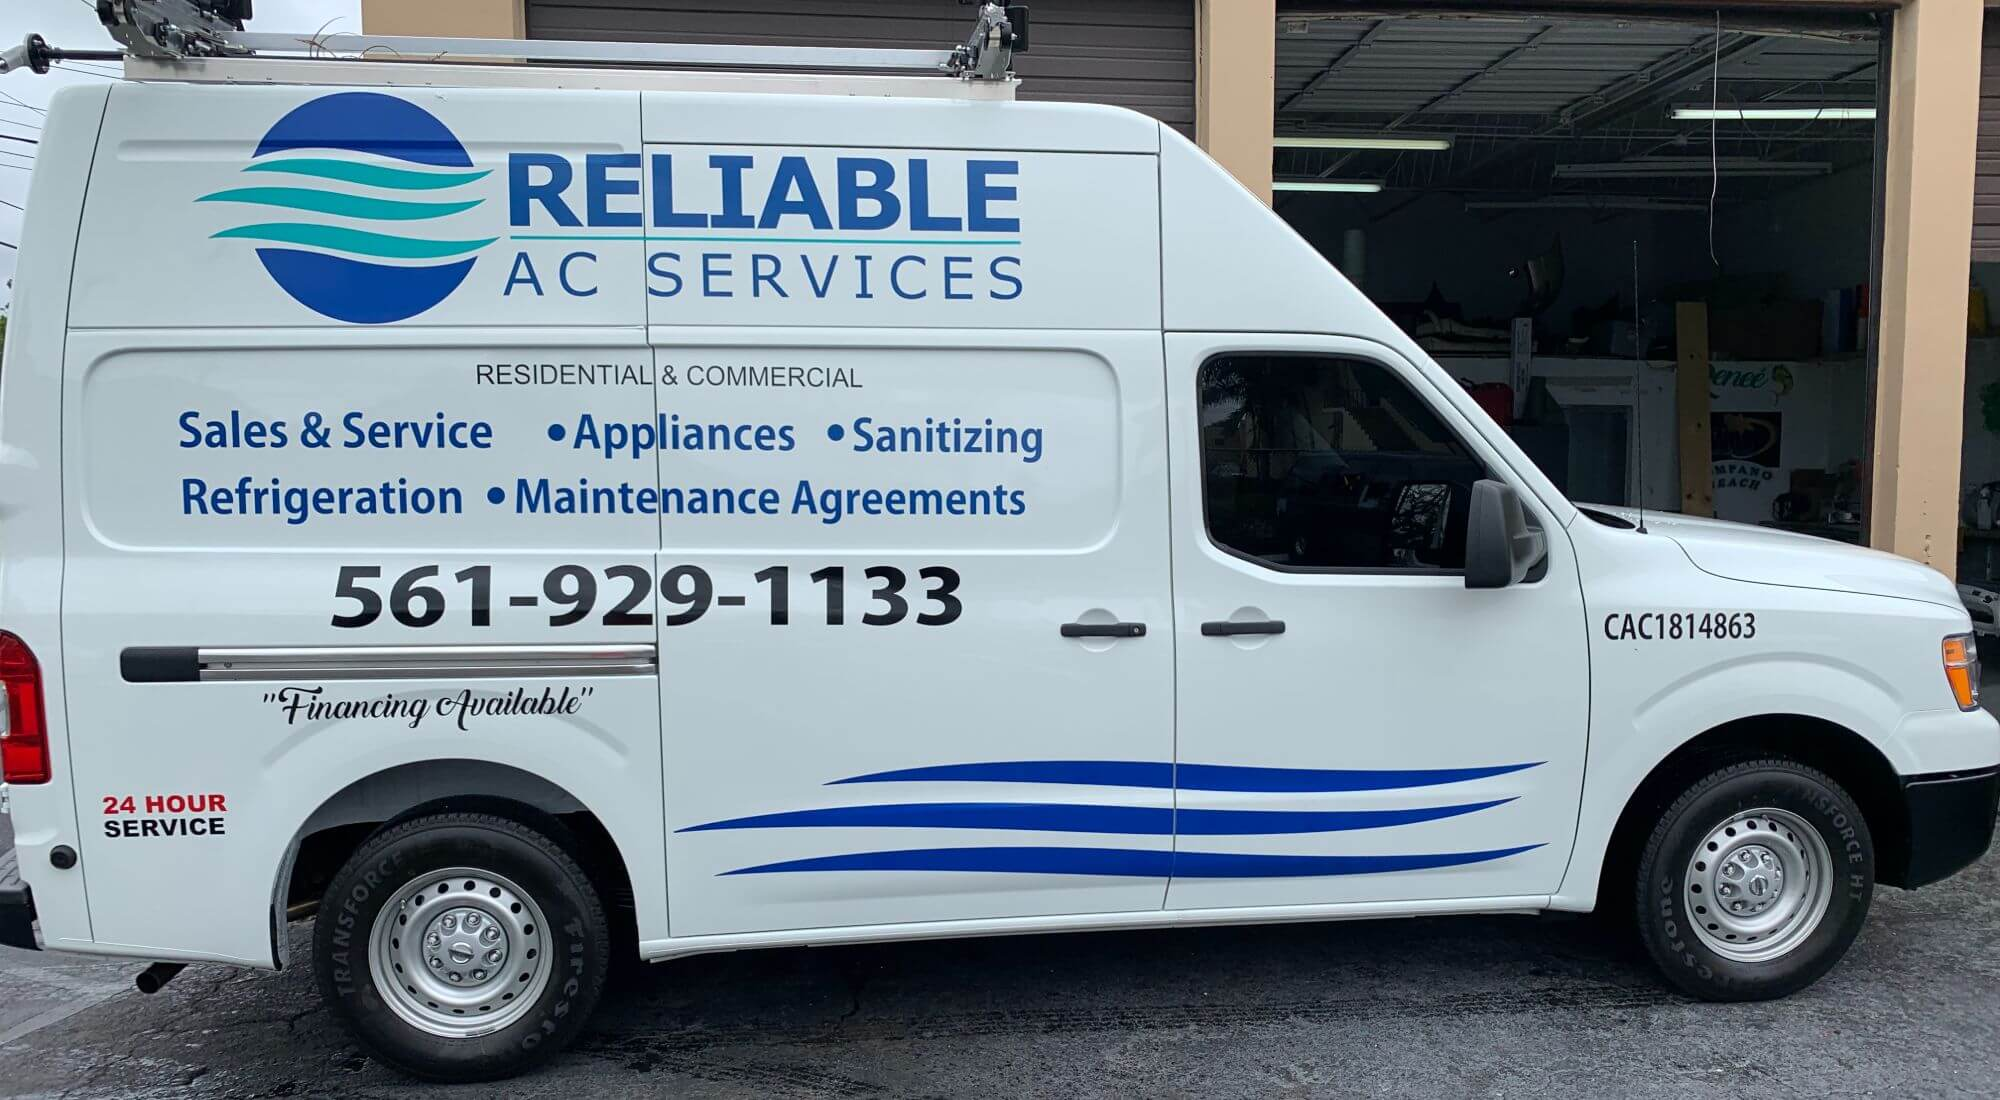 Reliable Ac Services Llc (7)